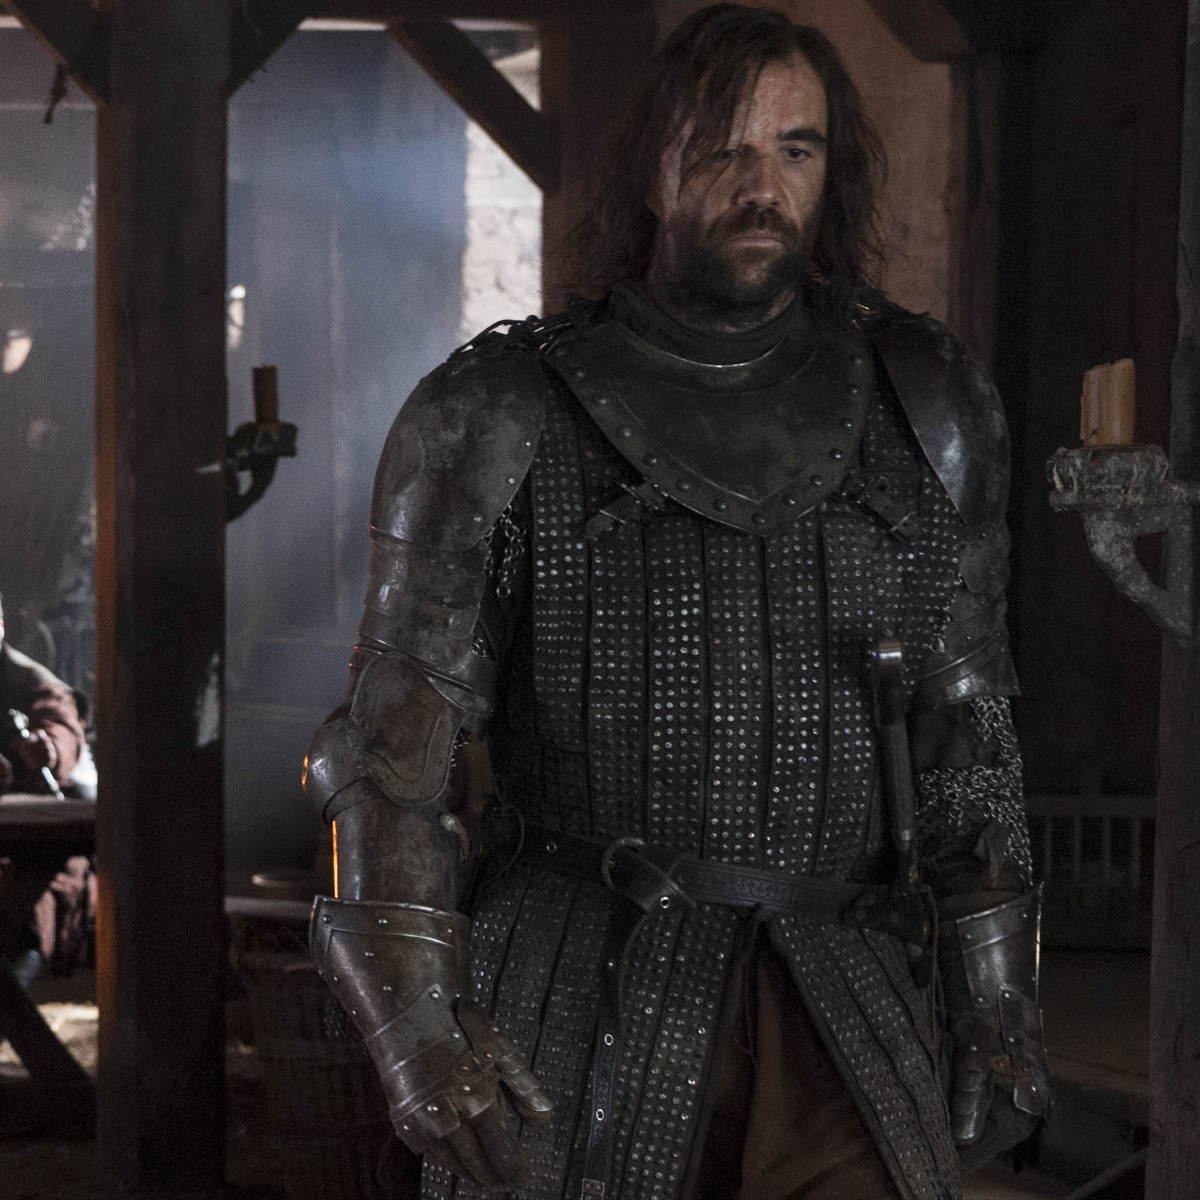 sandor quotthe houndquot clegane famous quotes game of thrones